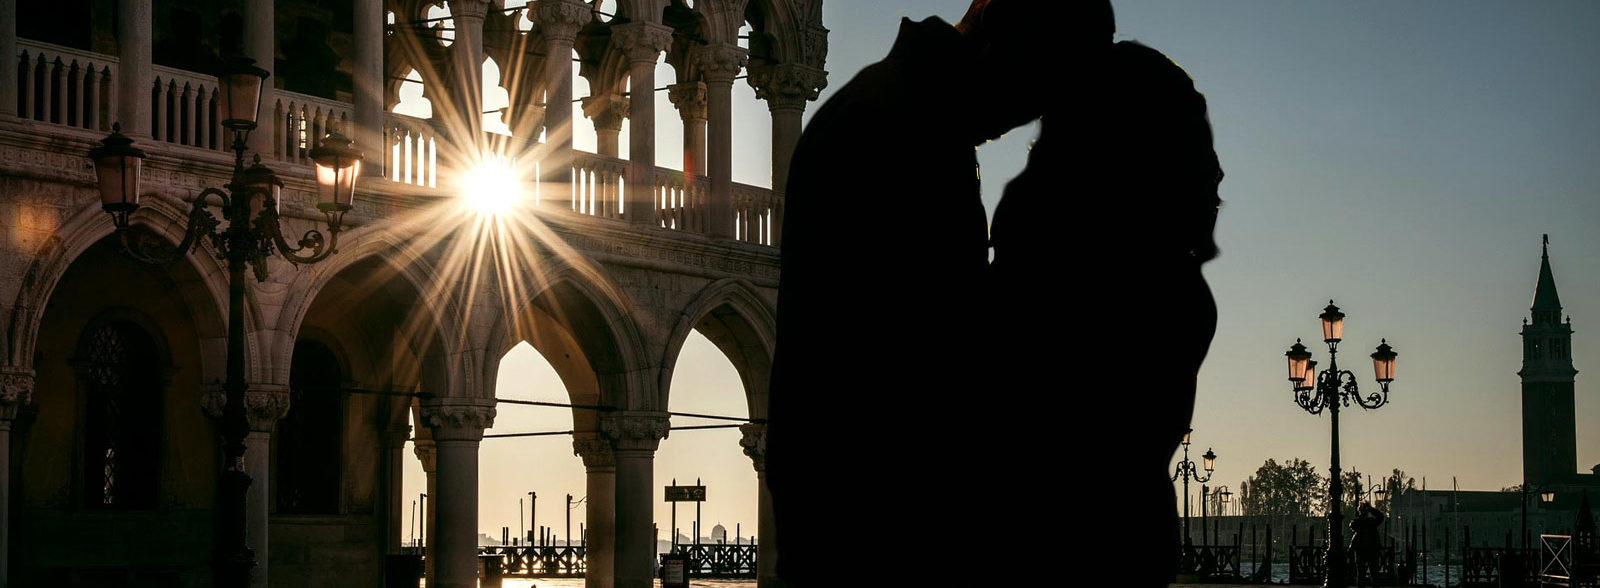 Honeymoon in Venice: reasons to choose this amazing city